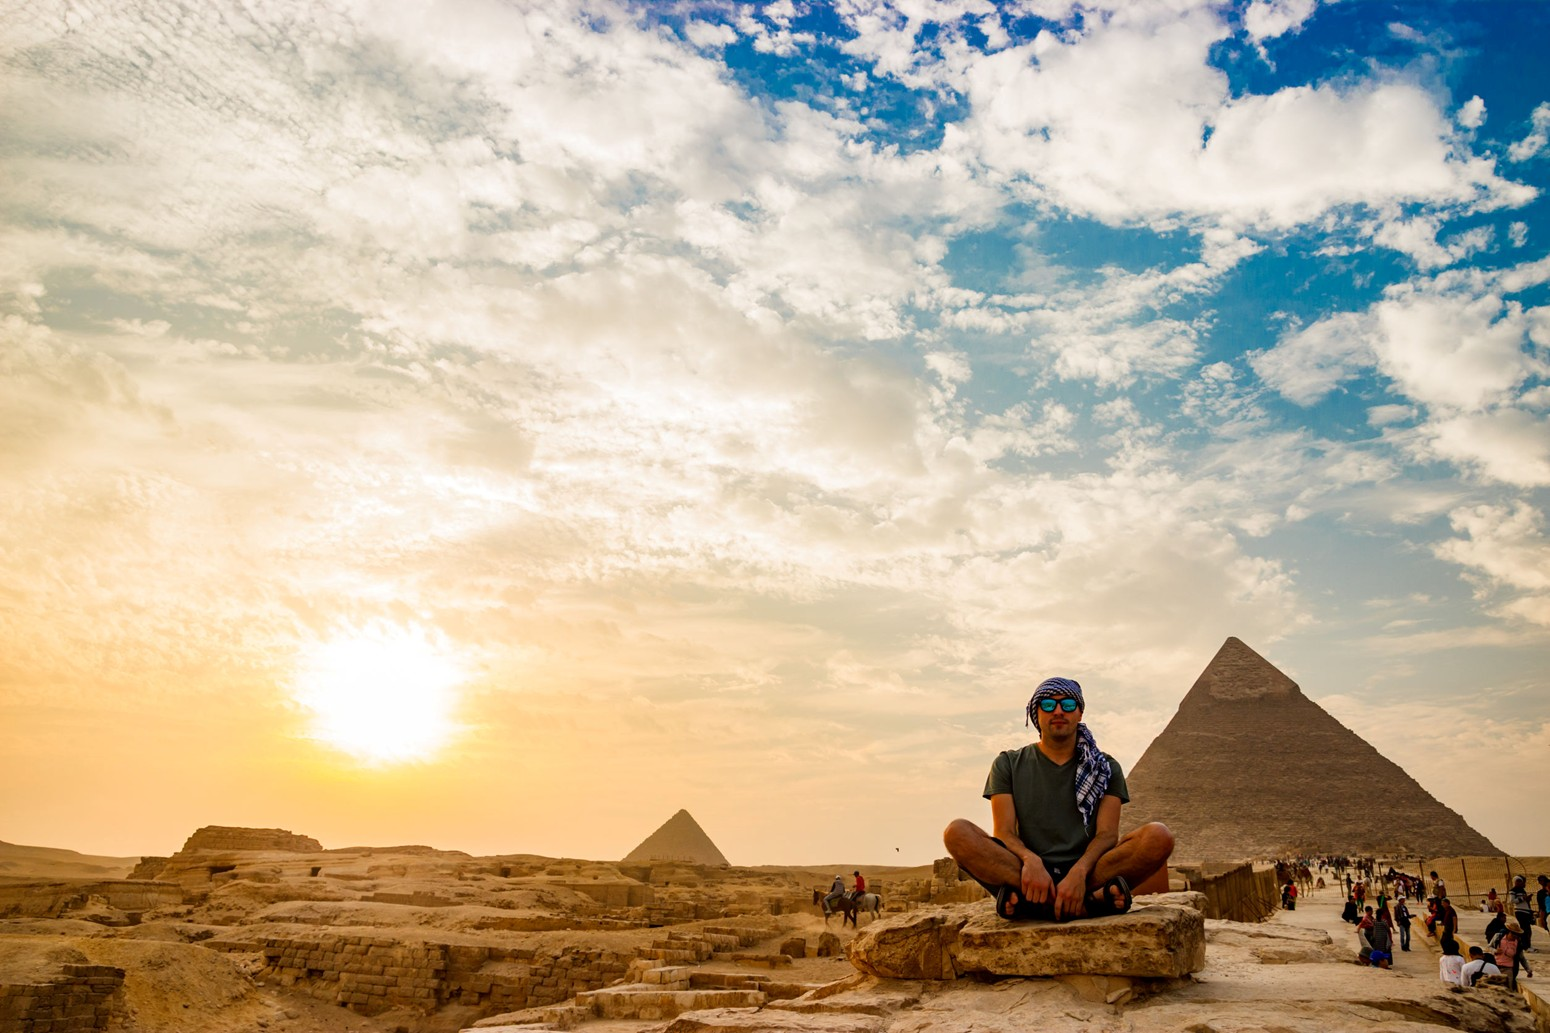 Travel to the Great Pyramids with Expert Advice from Sunset Travel and Cruise in Chicago, IL 60614